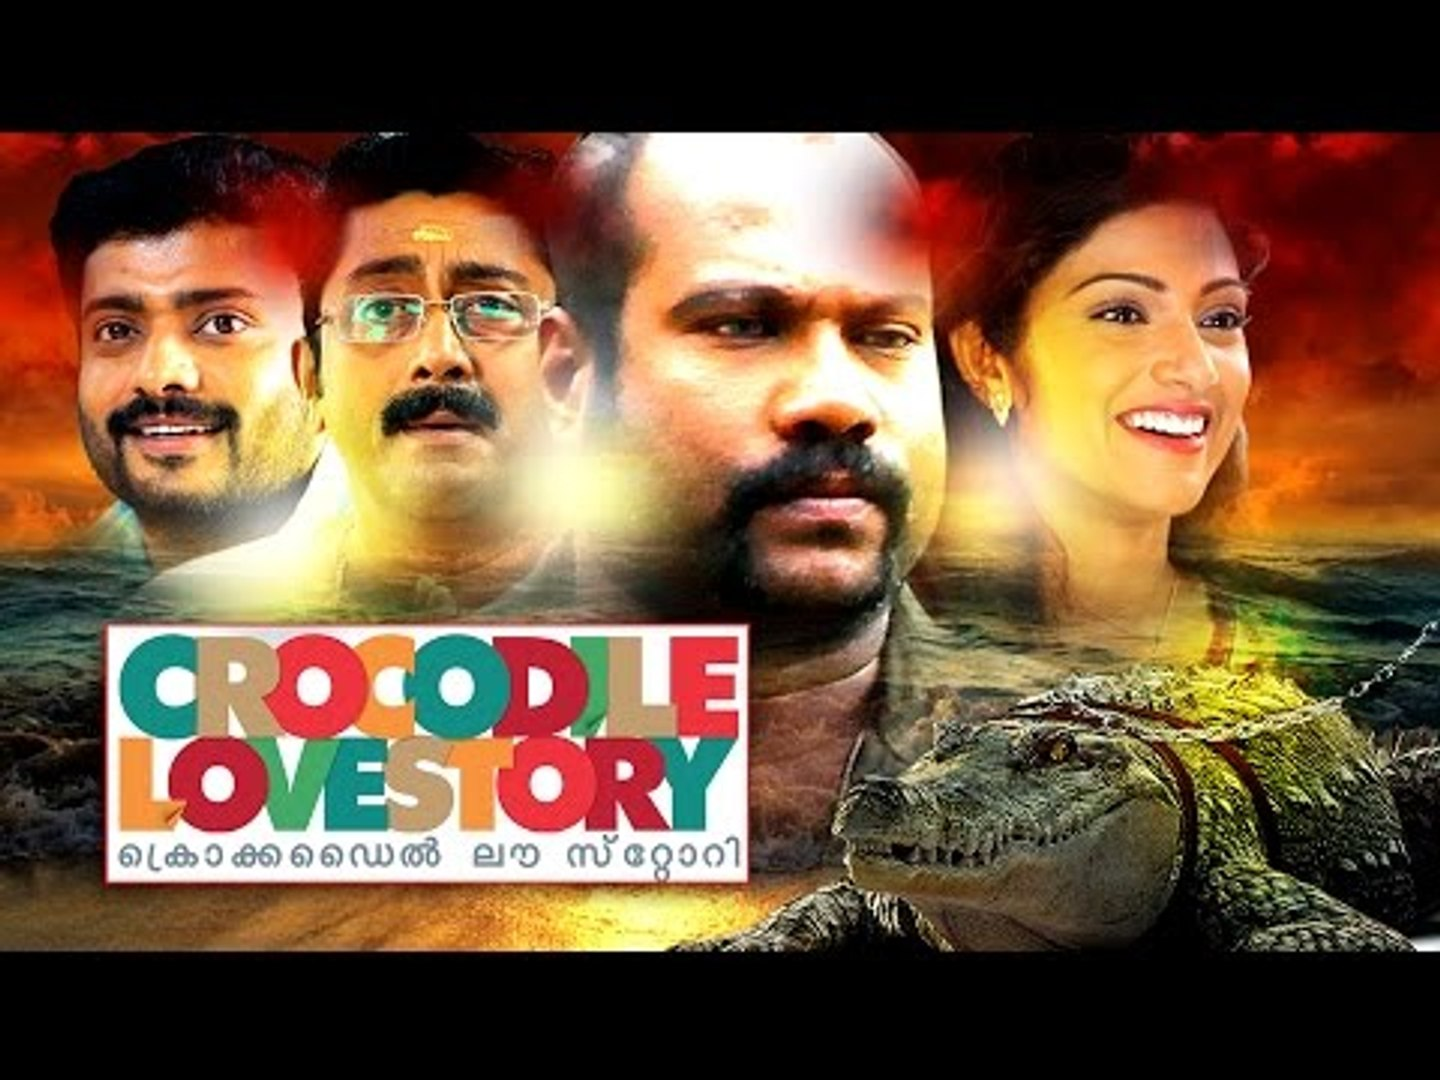 Malayalam Full Movie Crocodile Love Story #Malayalam Comedy Movie #Malayalam New Movies Full Movie